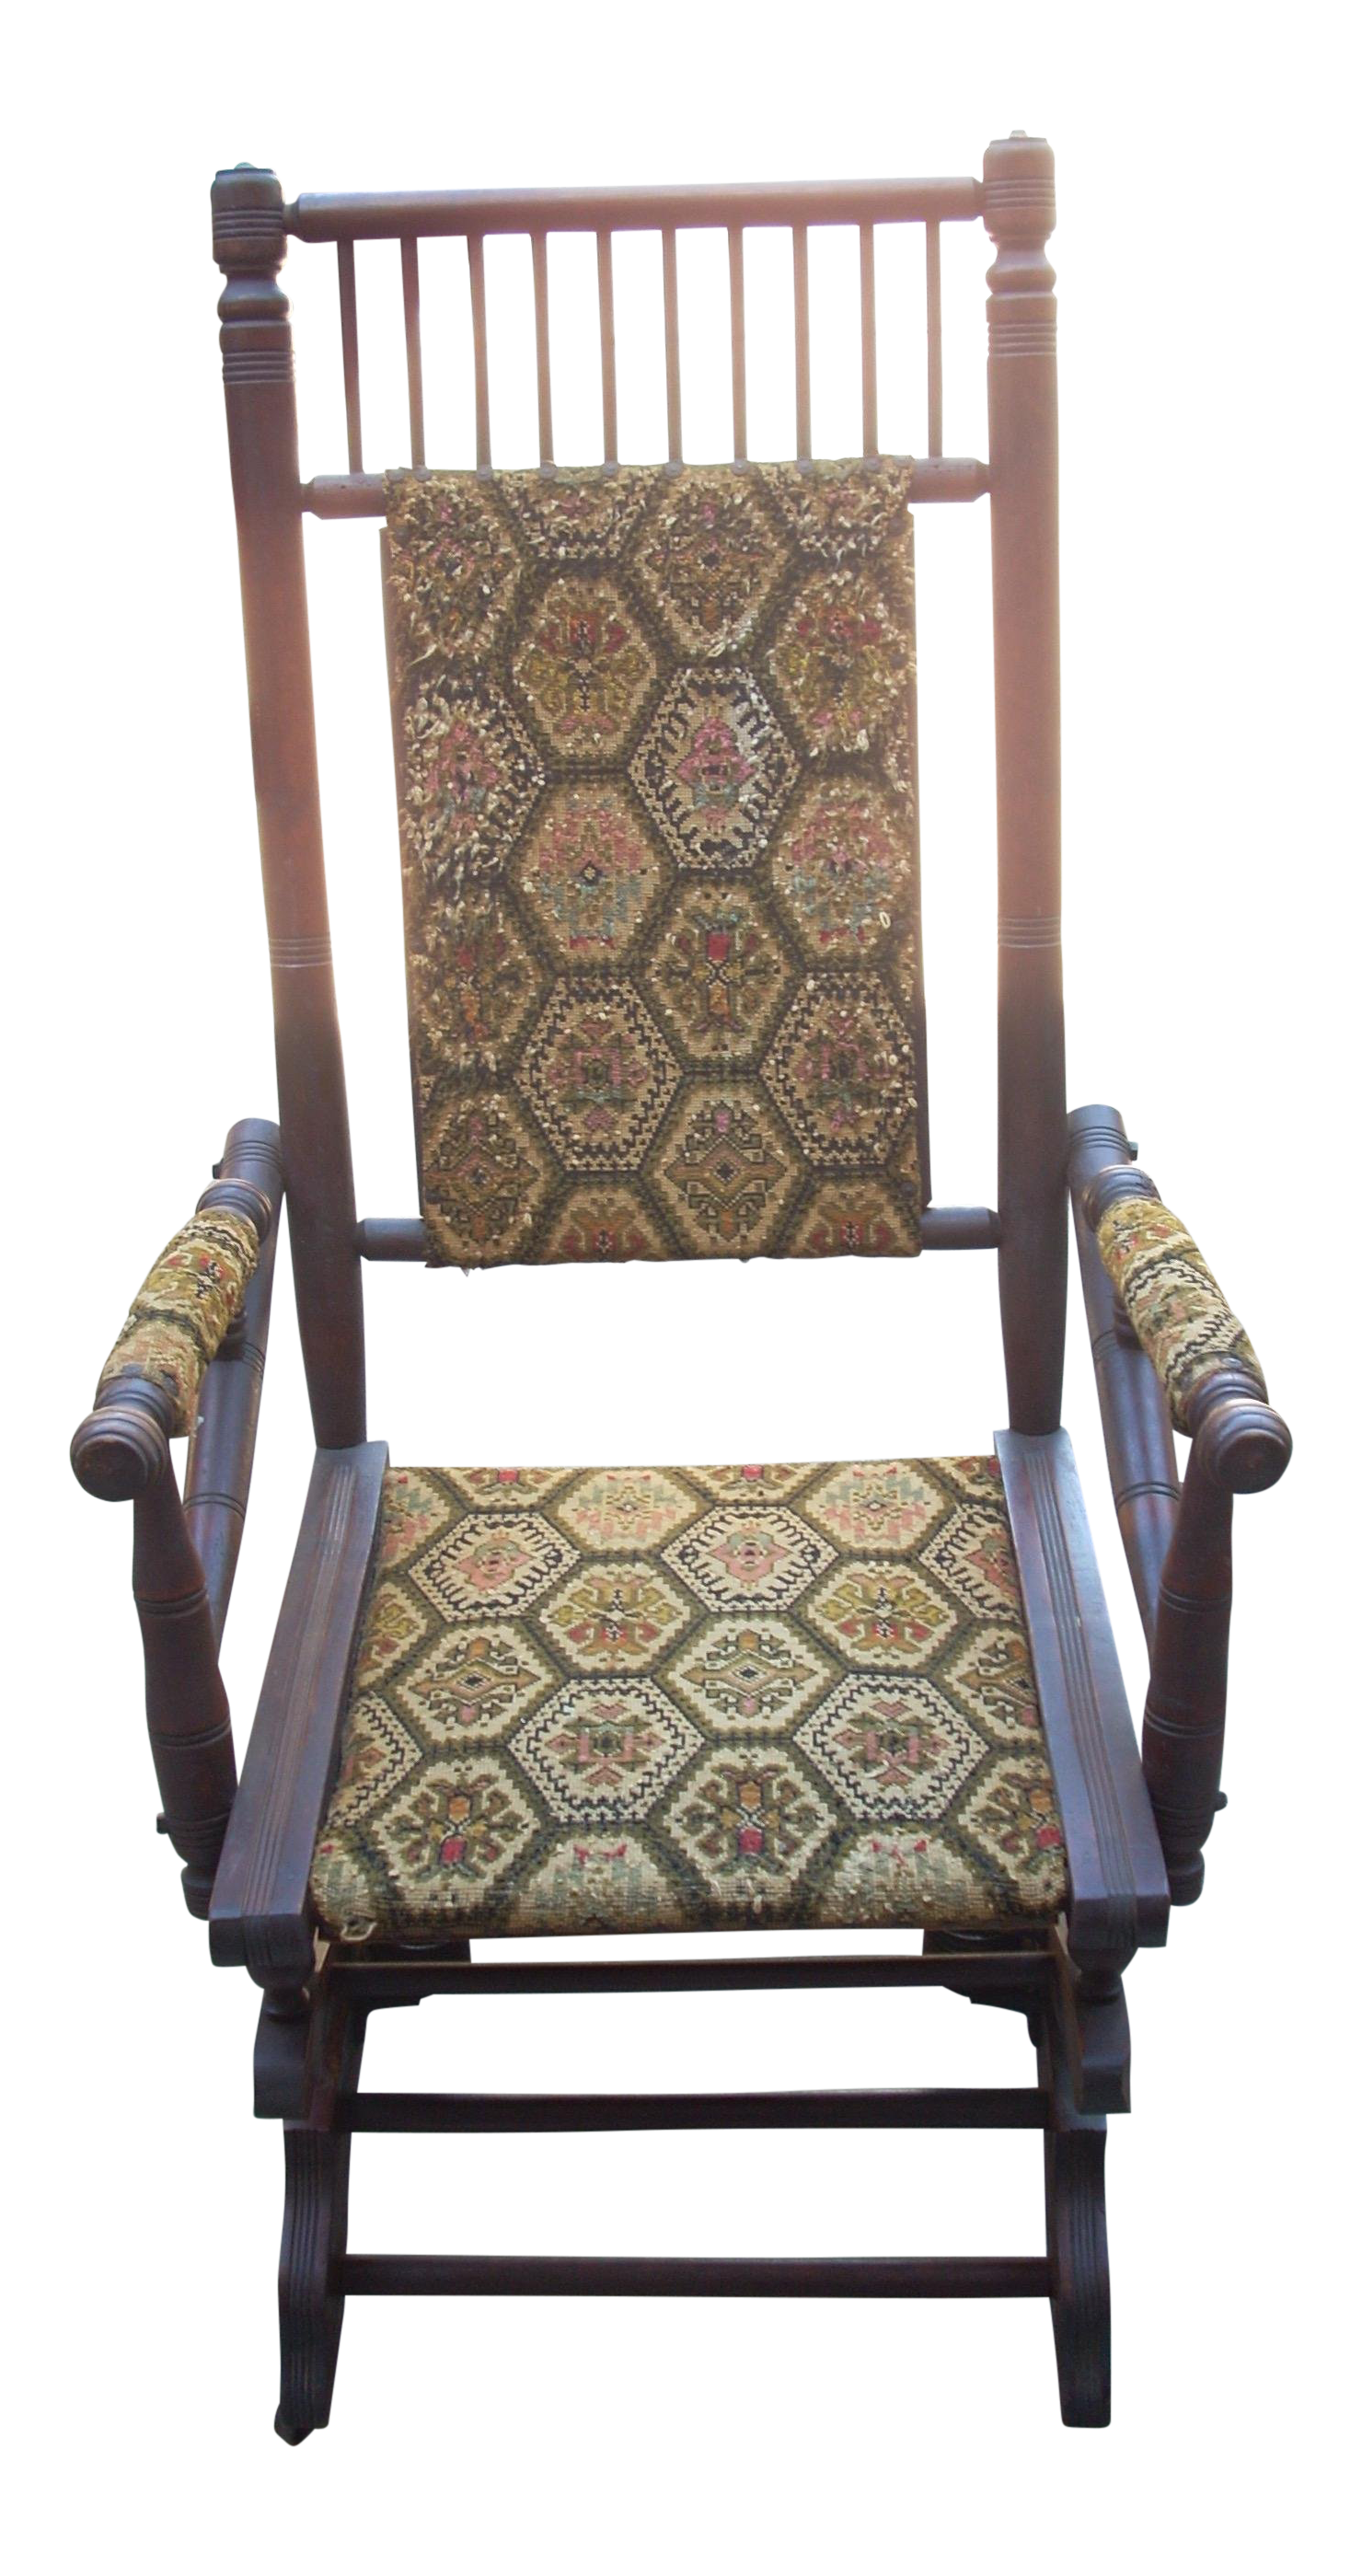 Vintage Printed Upholstered Platform Rocking Chair